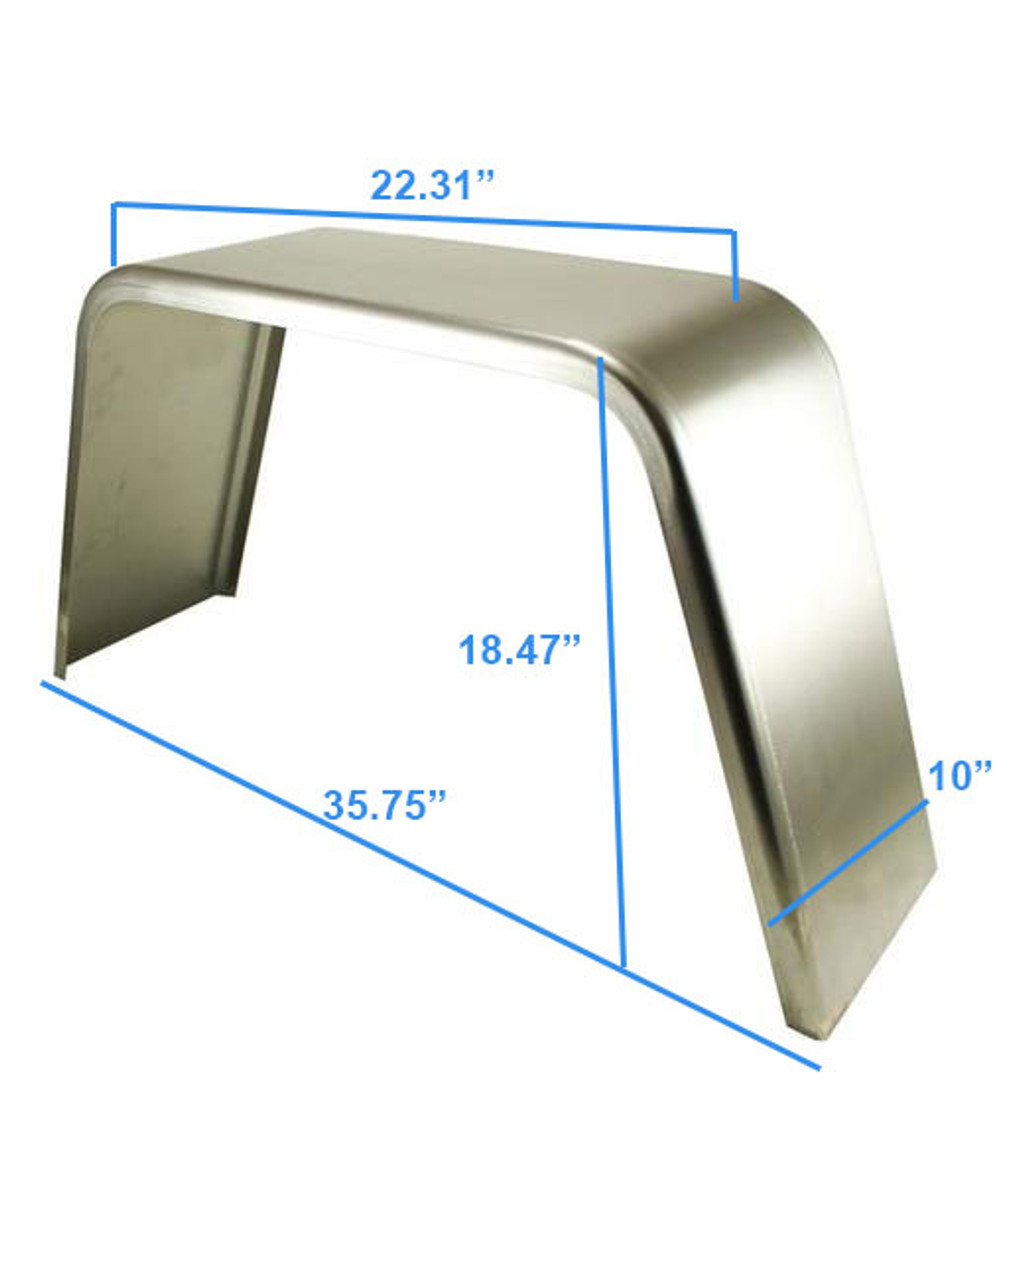 36x10 Smooth Aluminum Single Axle Jeep Style Utility Trailer Fender - One Fender